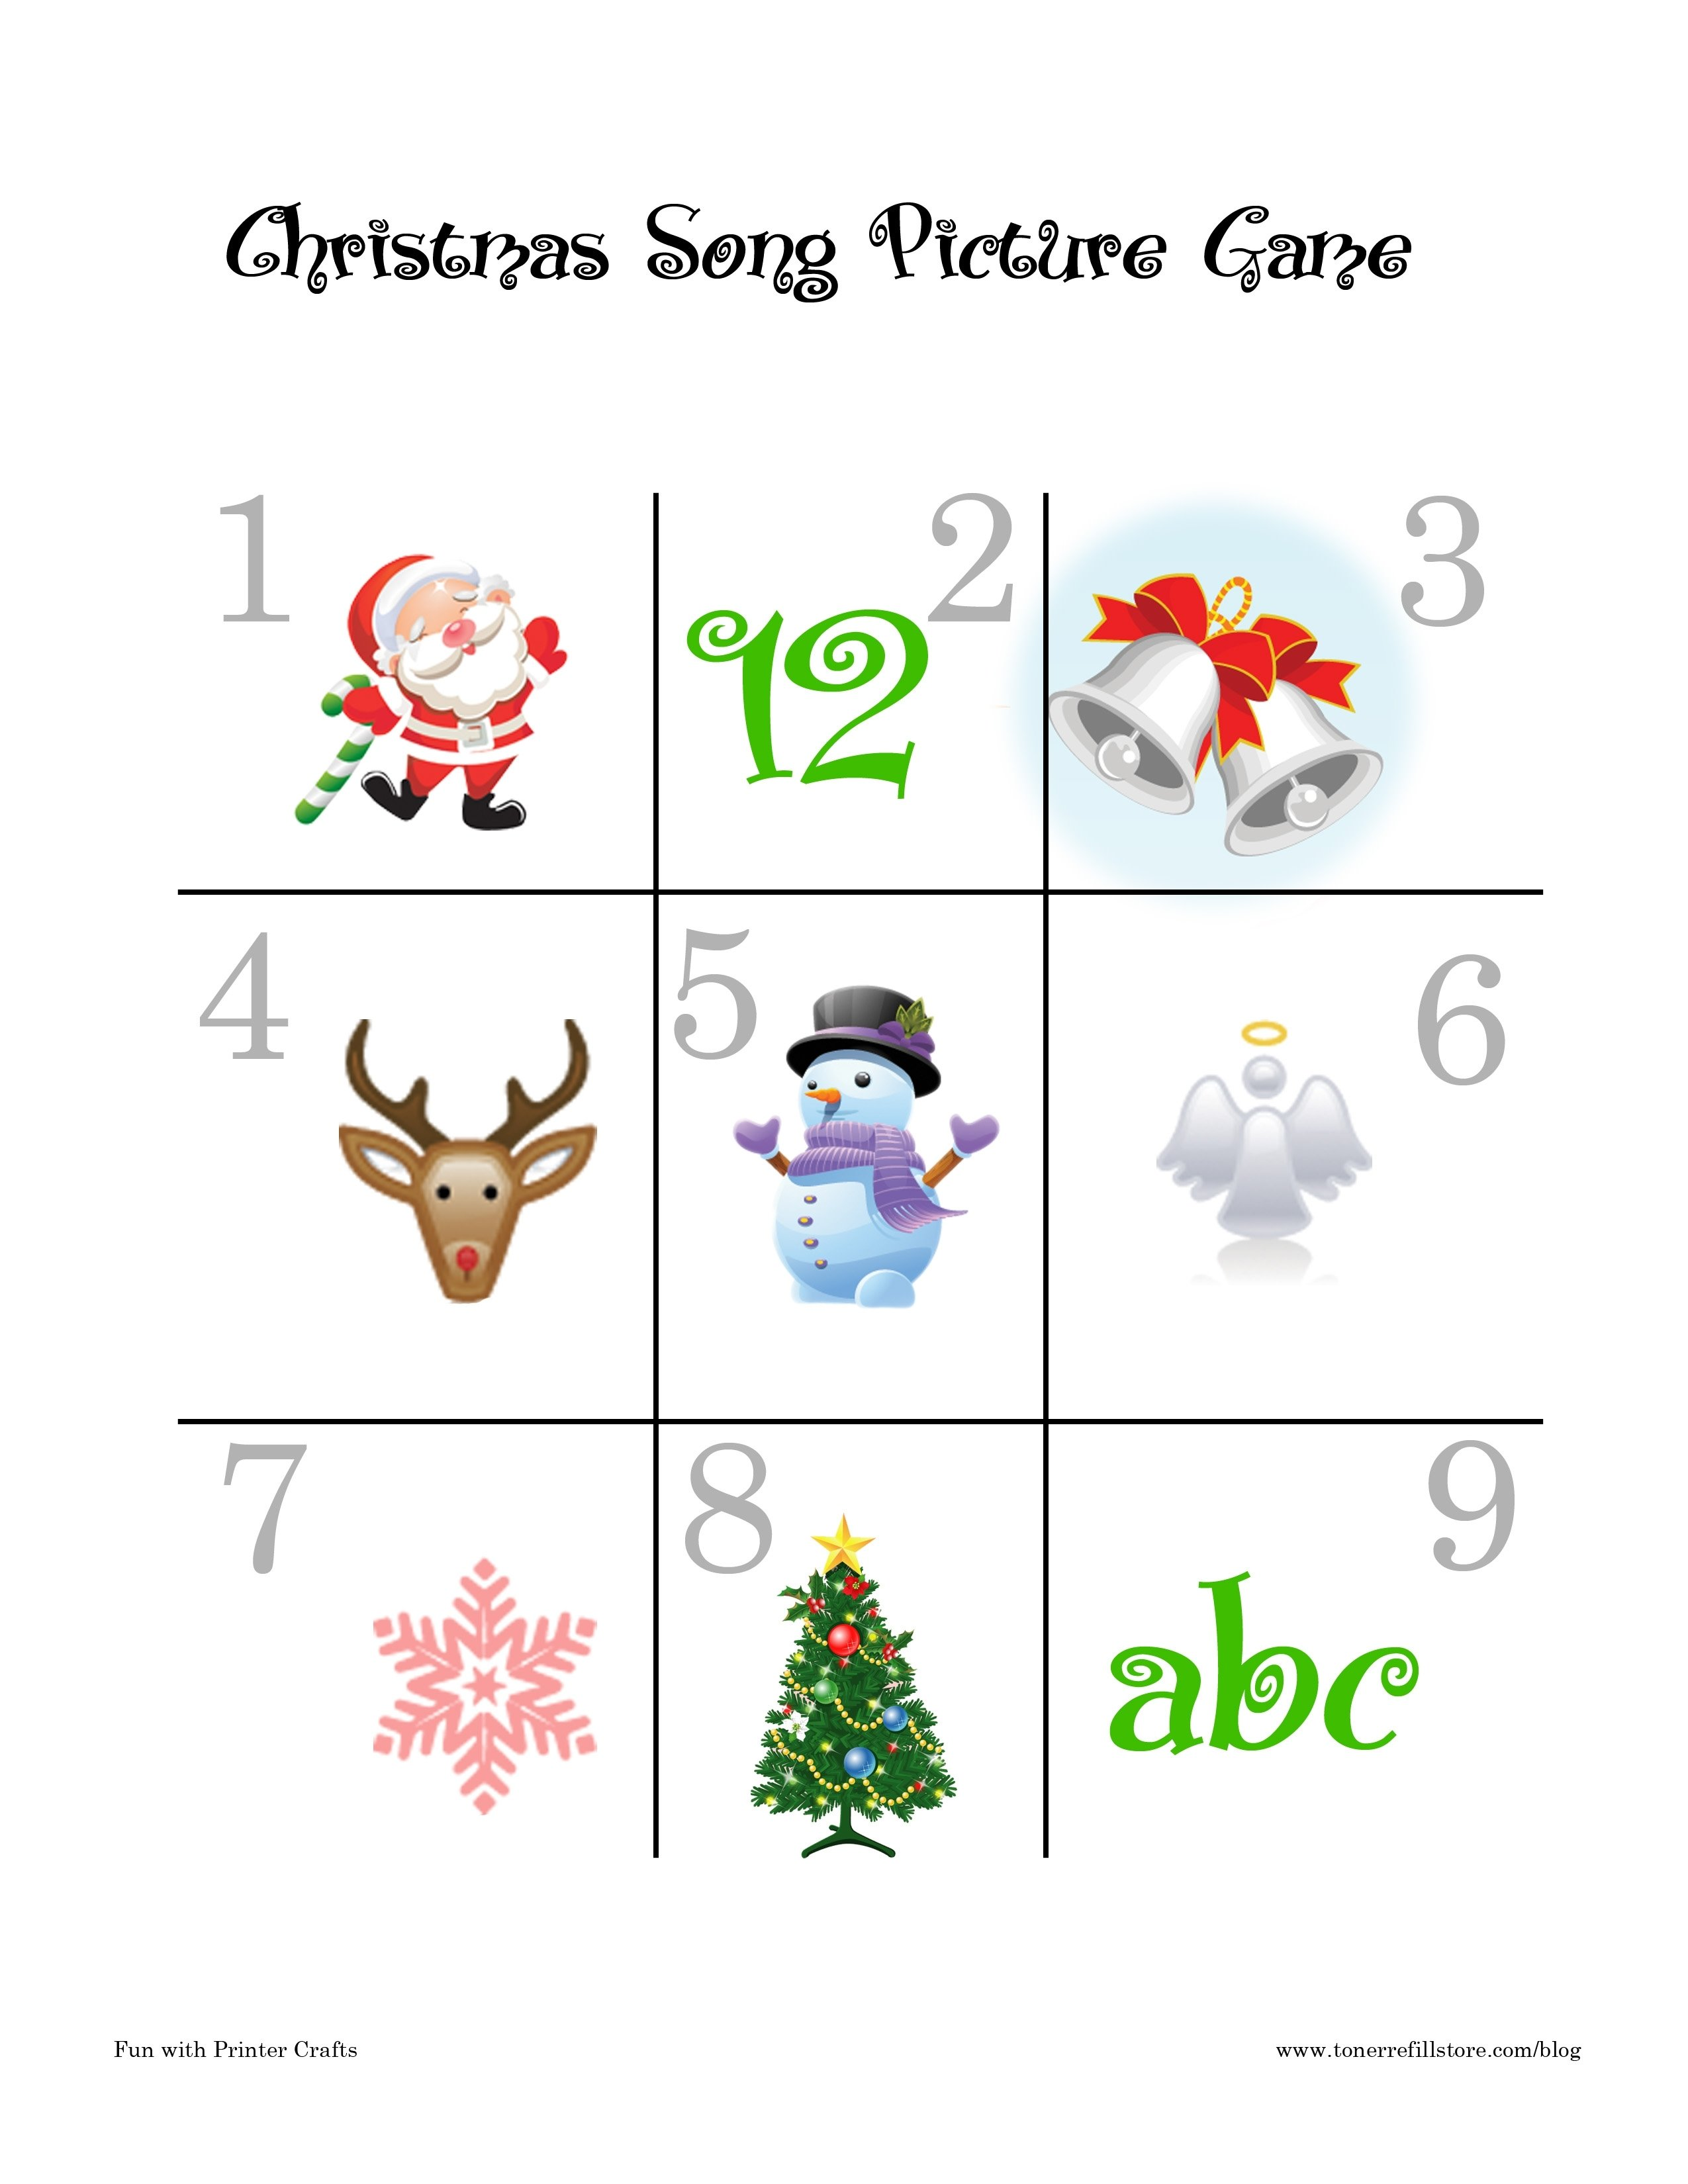 10 Unique Christmas Game Ideas For Kids christmas song games fun printable christmas games for kids fun